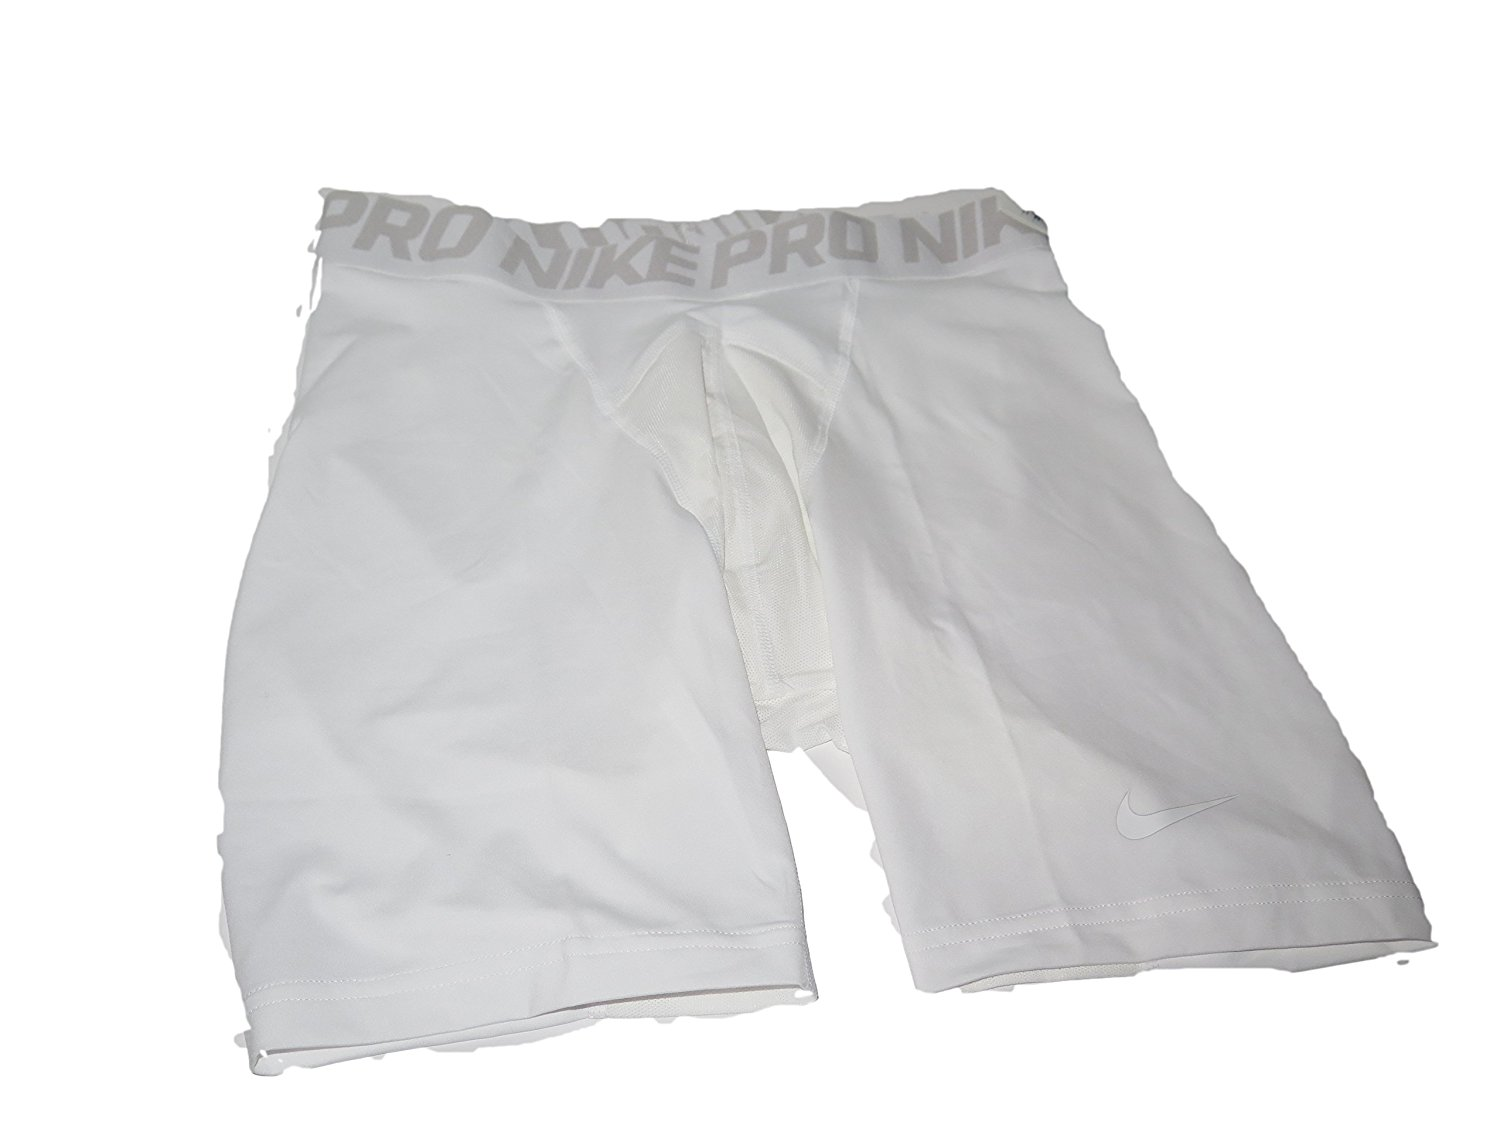 1c079049 Buy Nike Pro 742959-100 White Base Layer Compression Shorts Dri-Fit Mens  Size XL in Cheap Price on m.alibaba.com